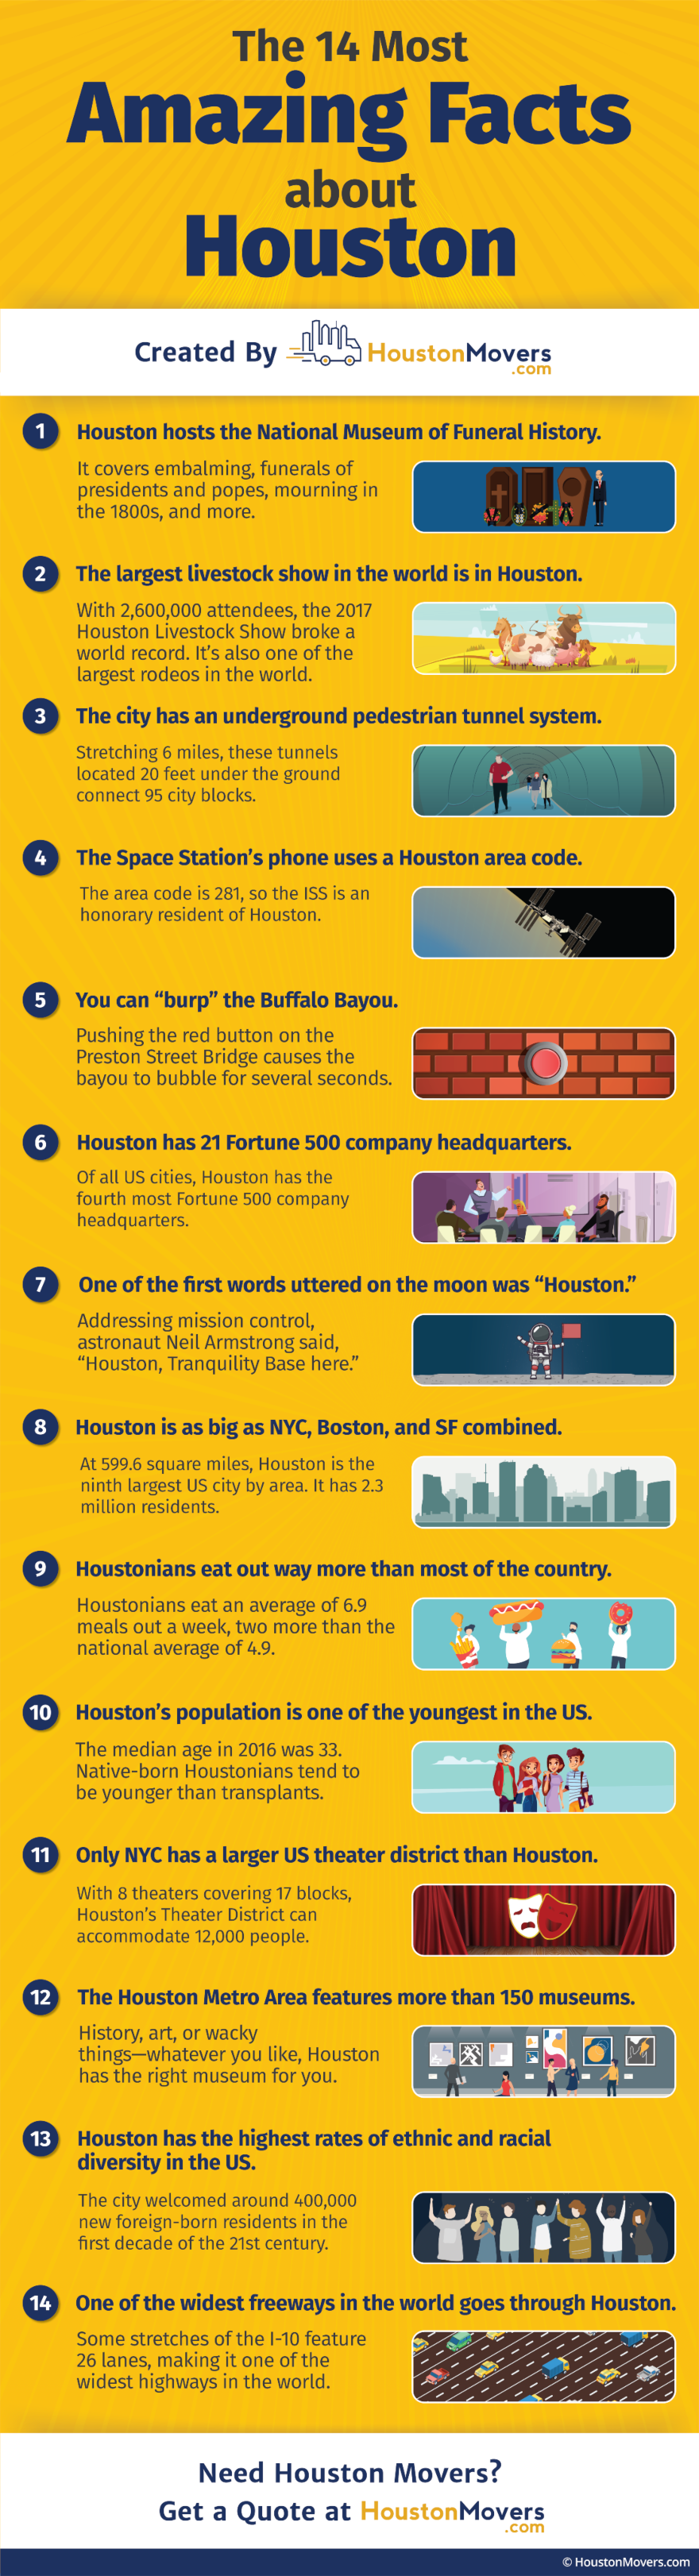 The 14 Most Amazing Facts About Houston by HoustonMovers.com